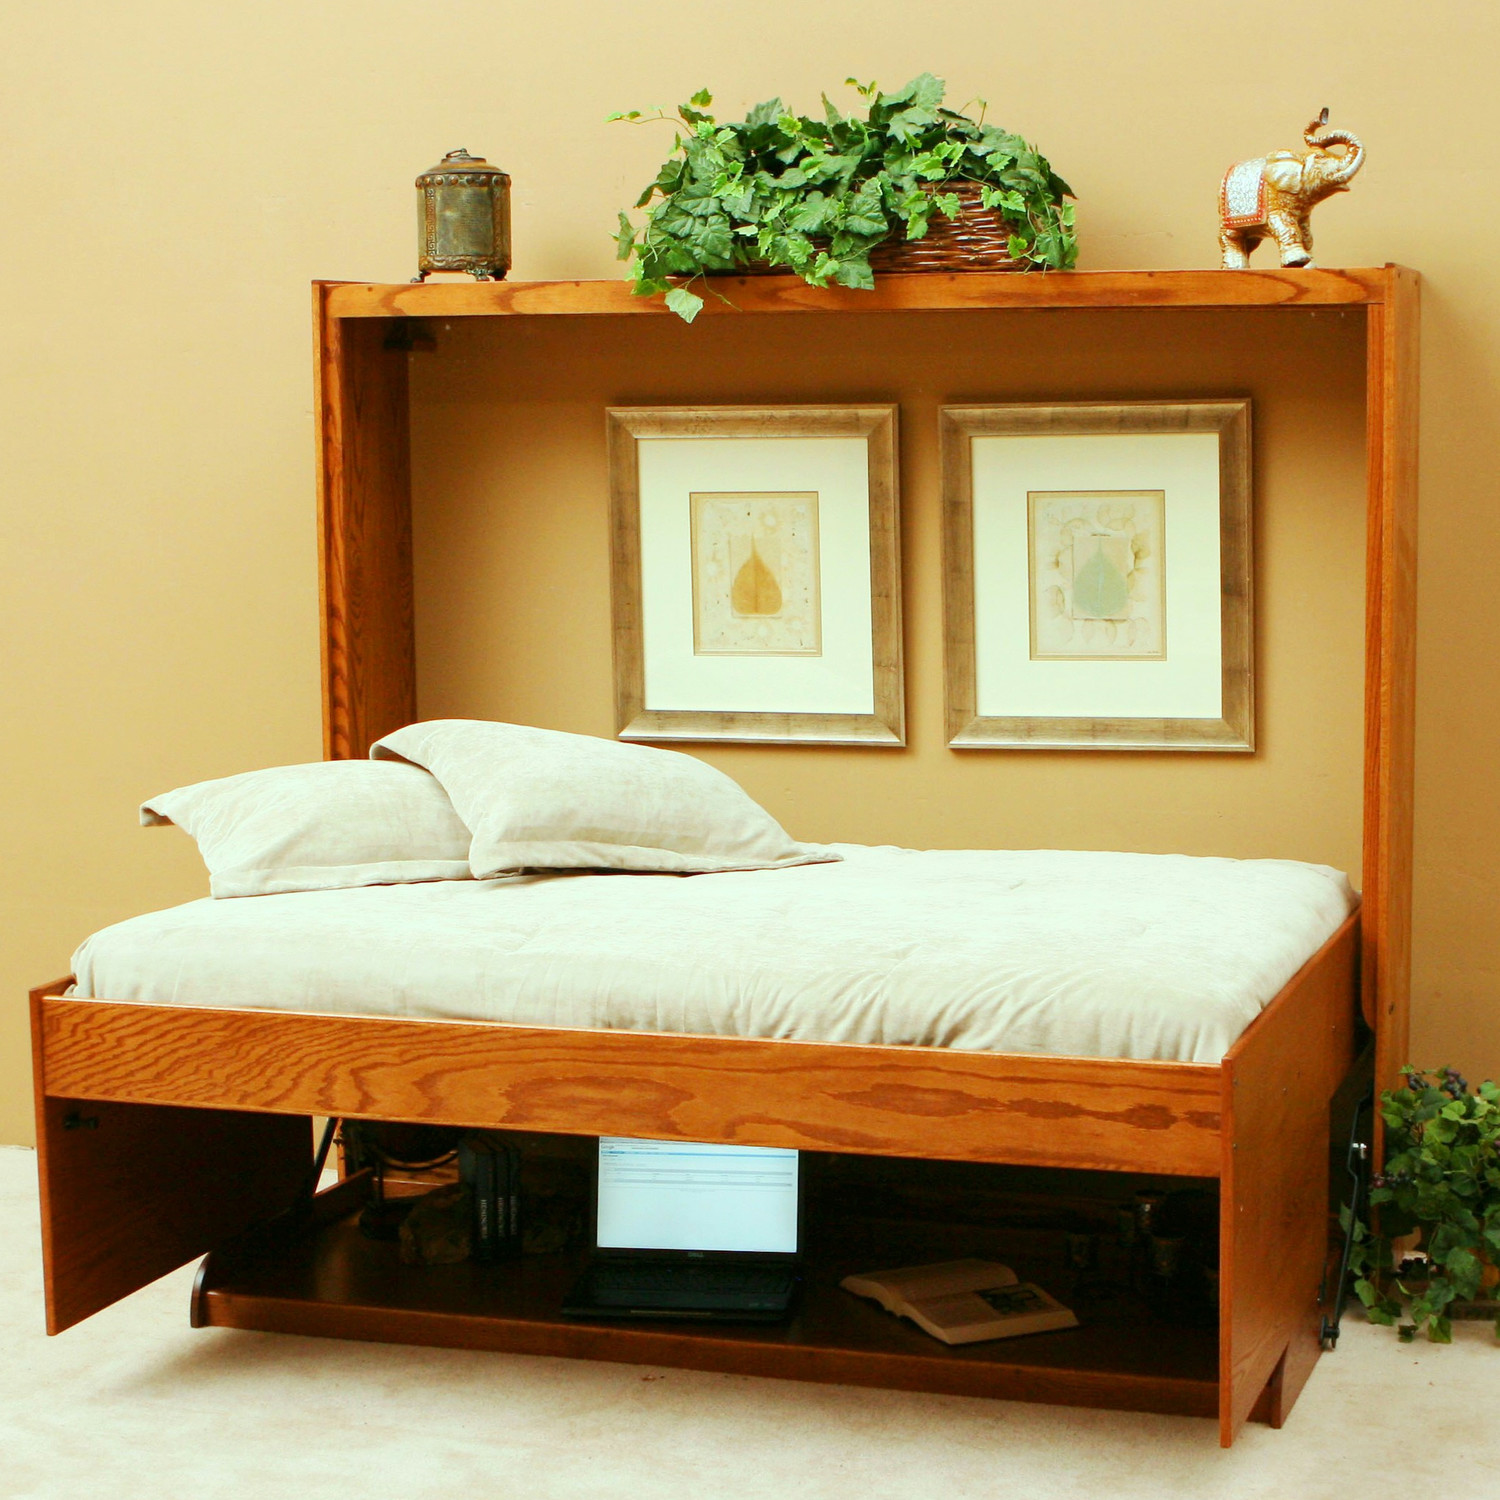 Murphy beds chicago homesfeed murphy bed pillows laptop plants plant amipublicfo Images